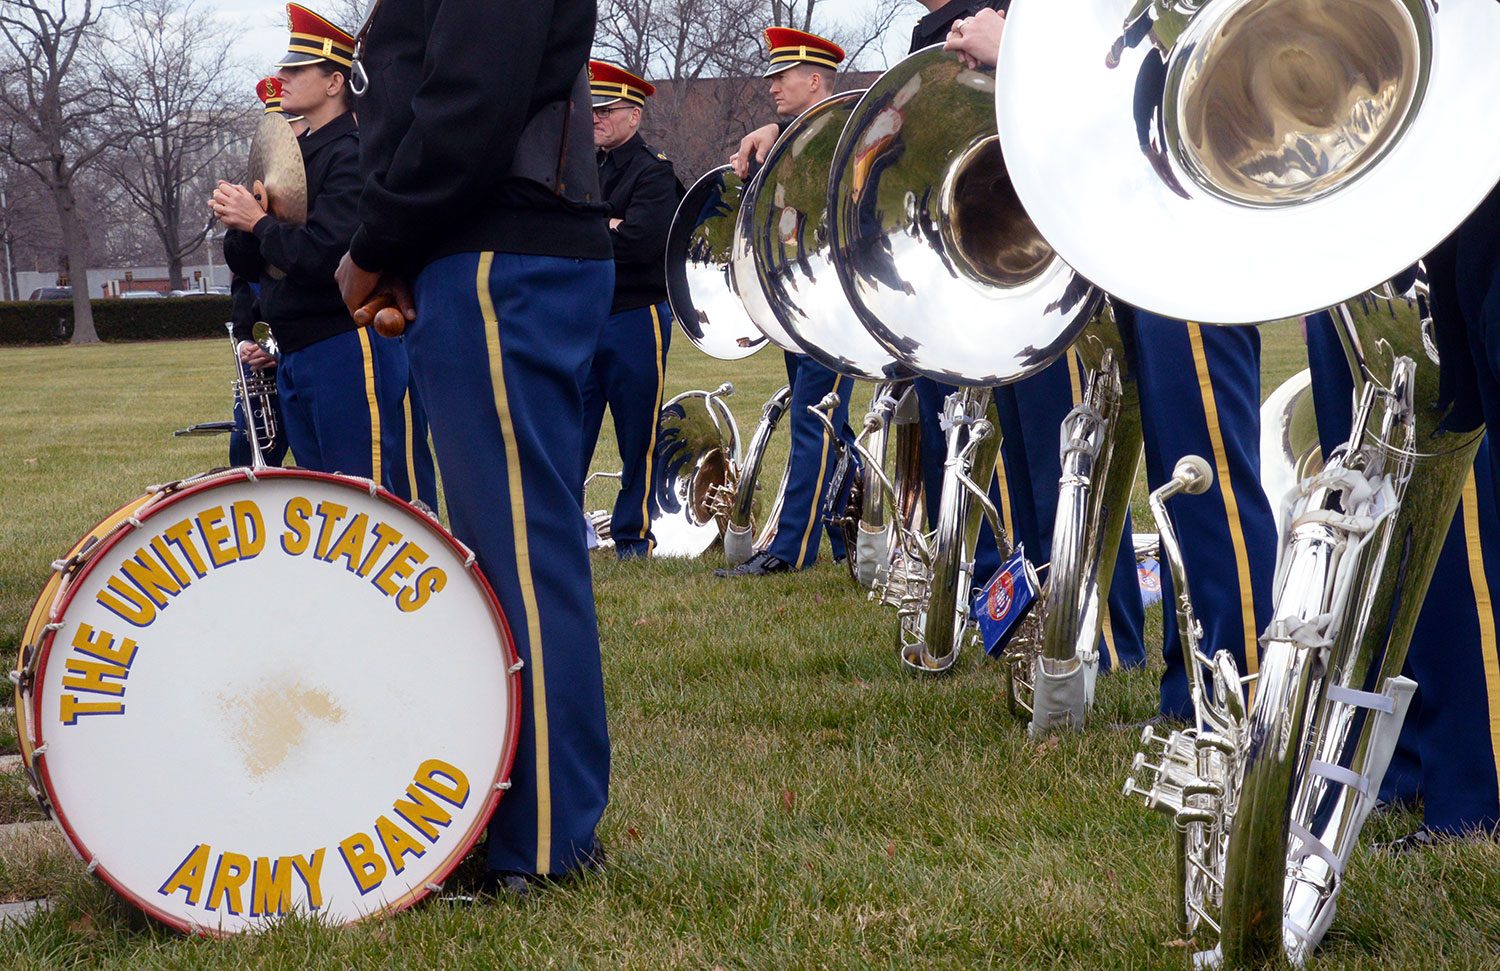 Members of the U.S. Army Band